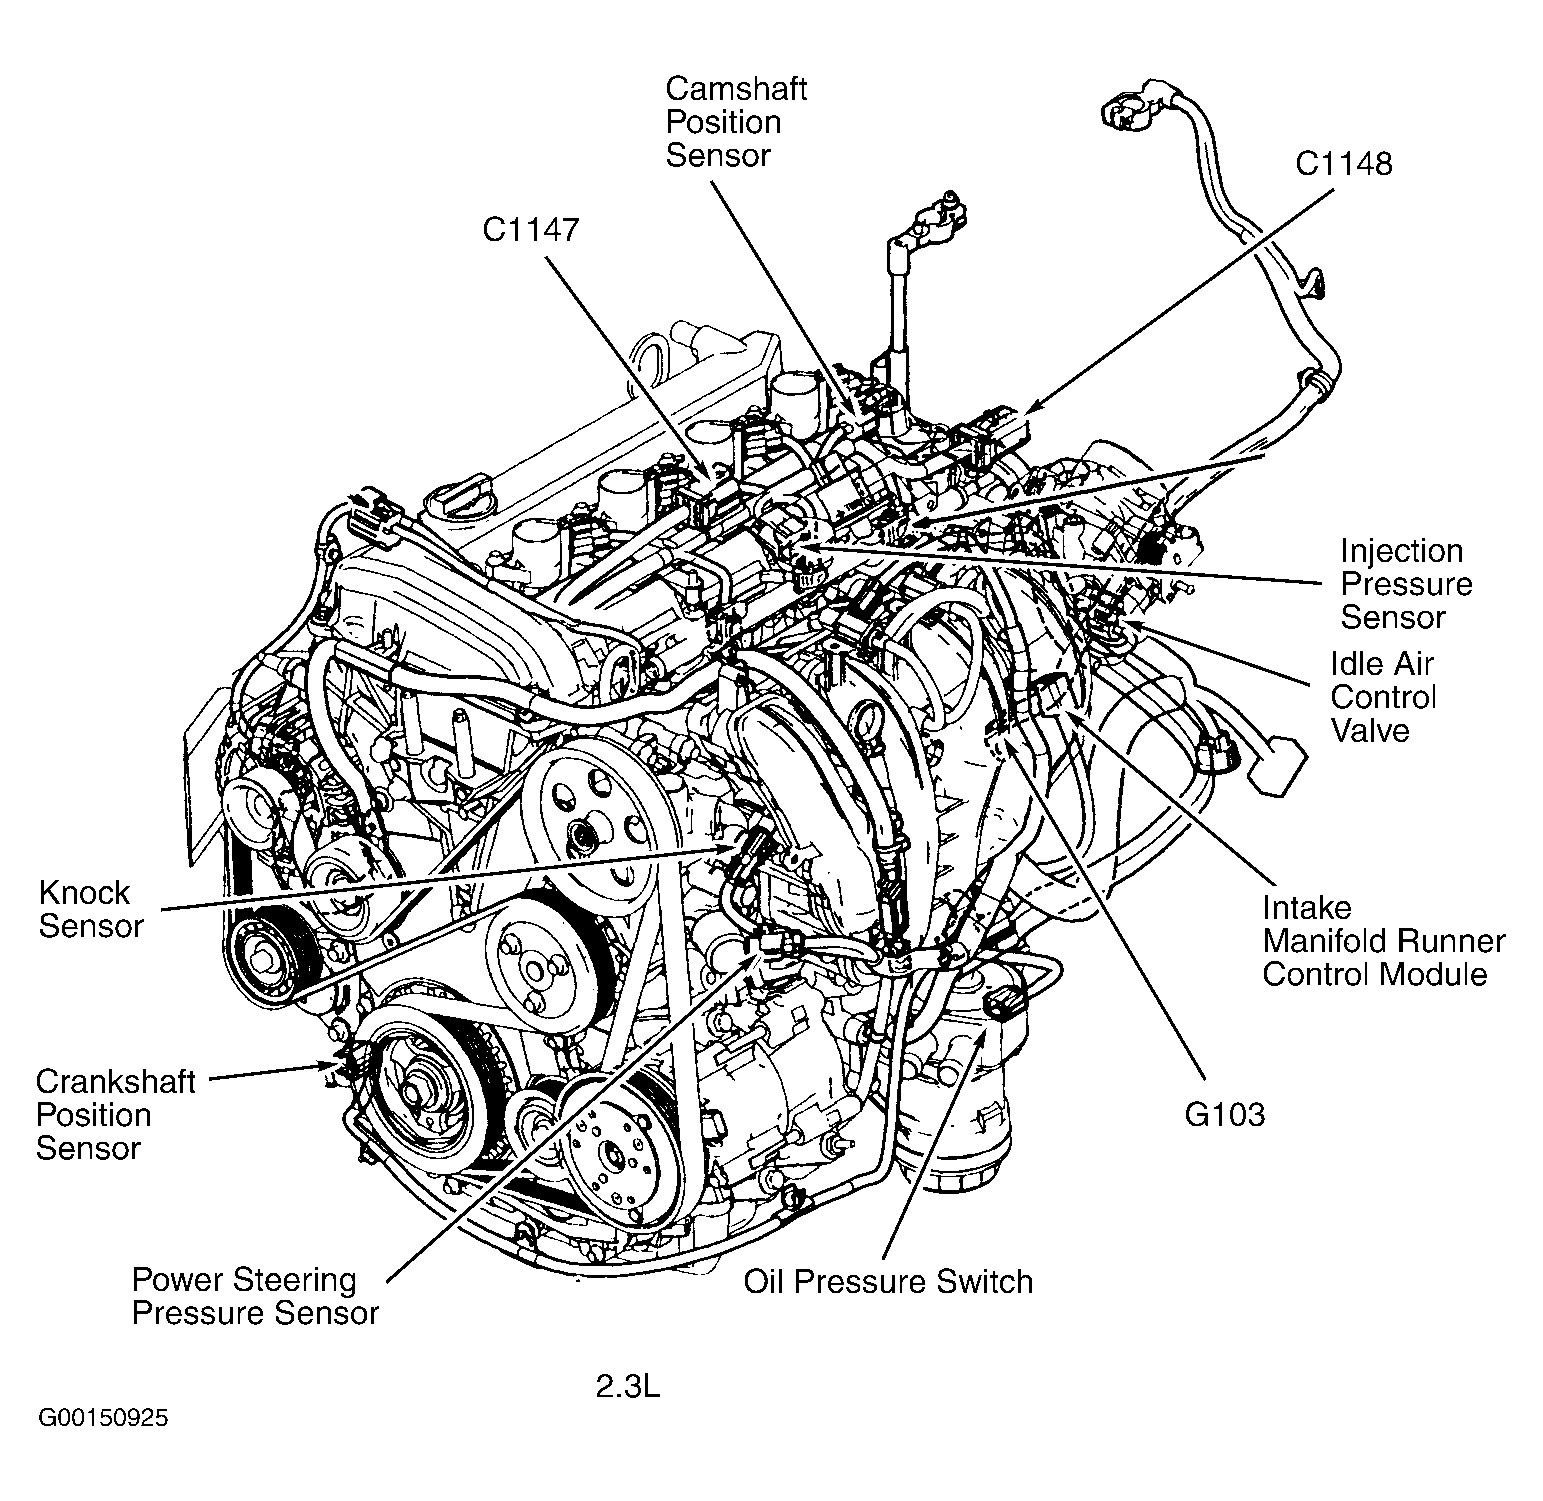 hight resolution of 03 ford focus motor diagram schema wiring diagram online audi s6 engine diagram ford focus engine diagram